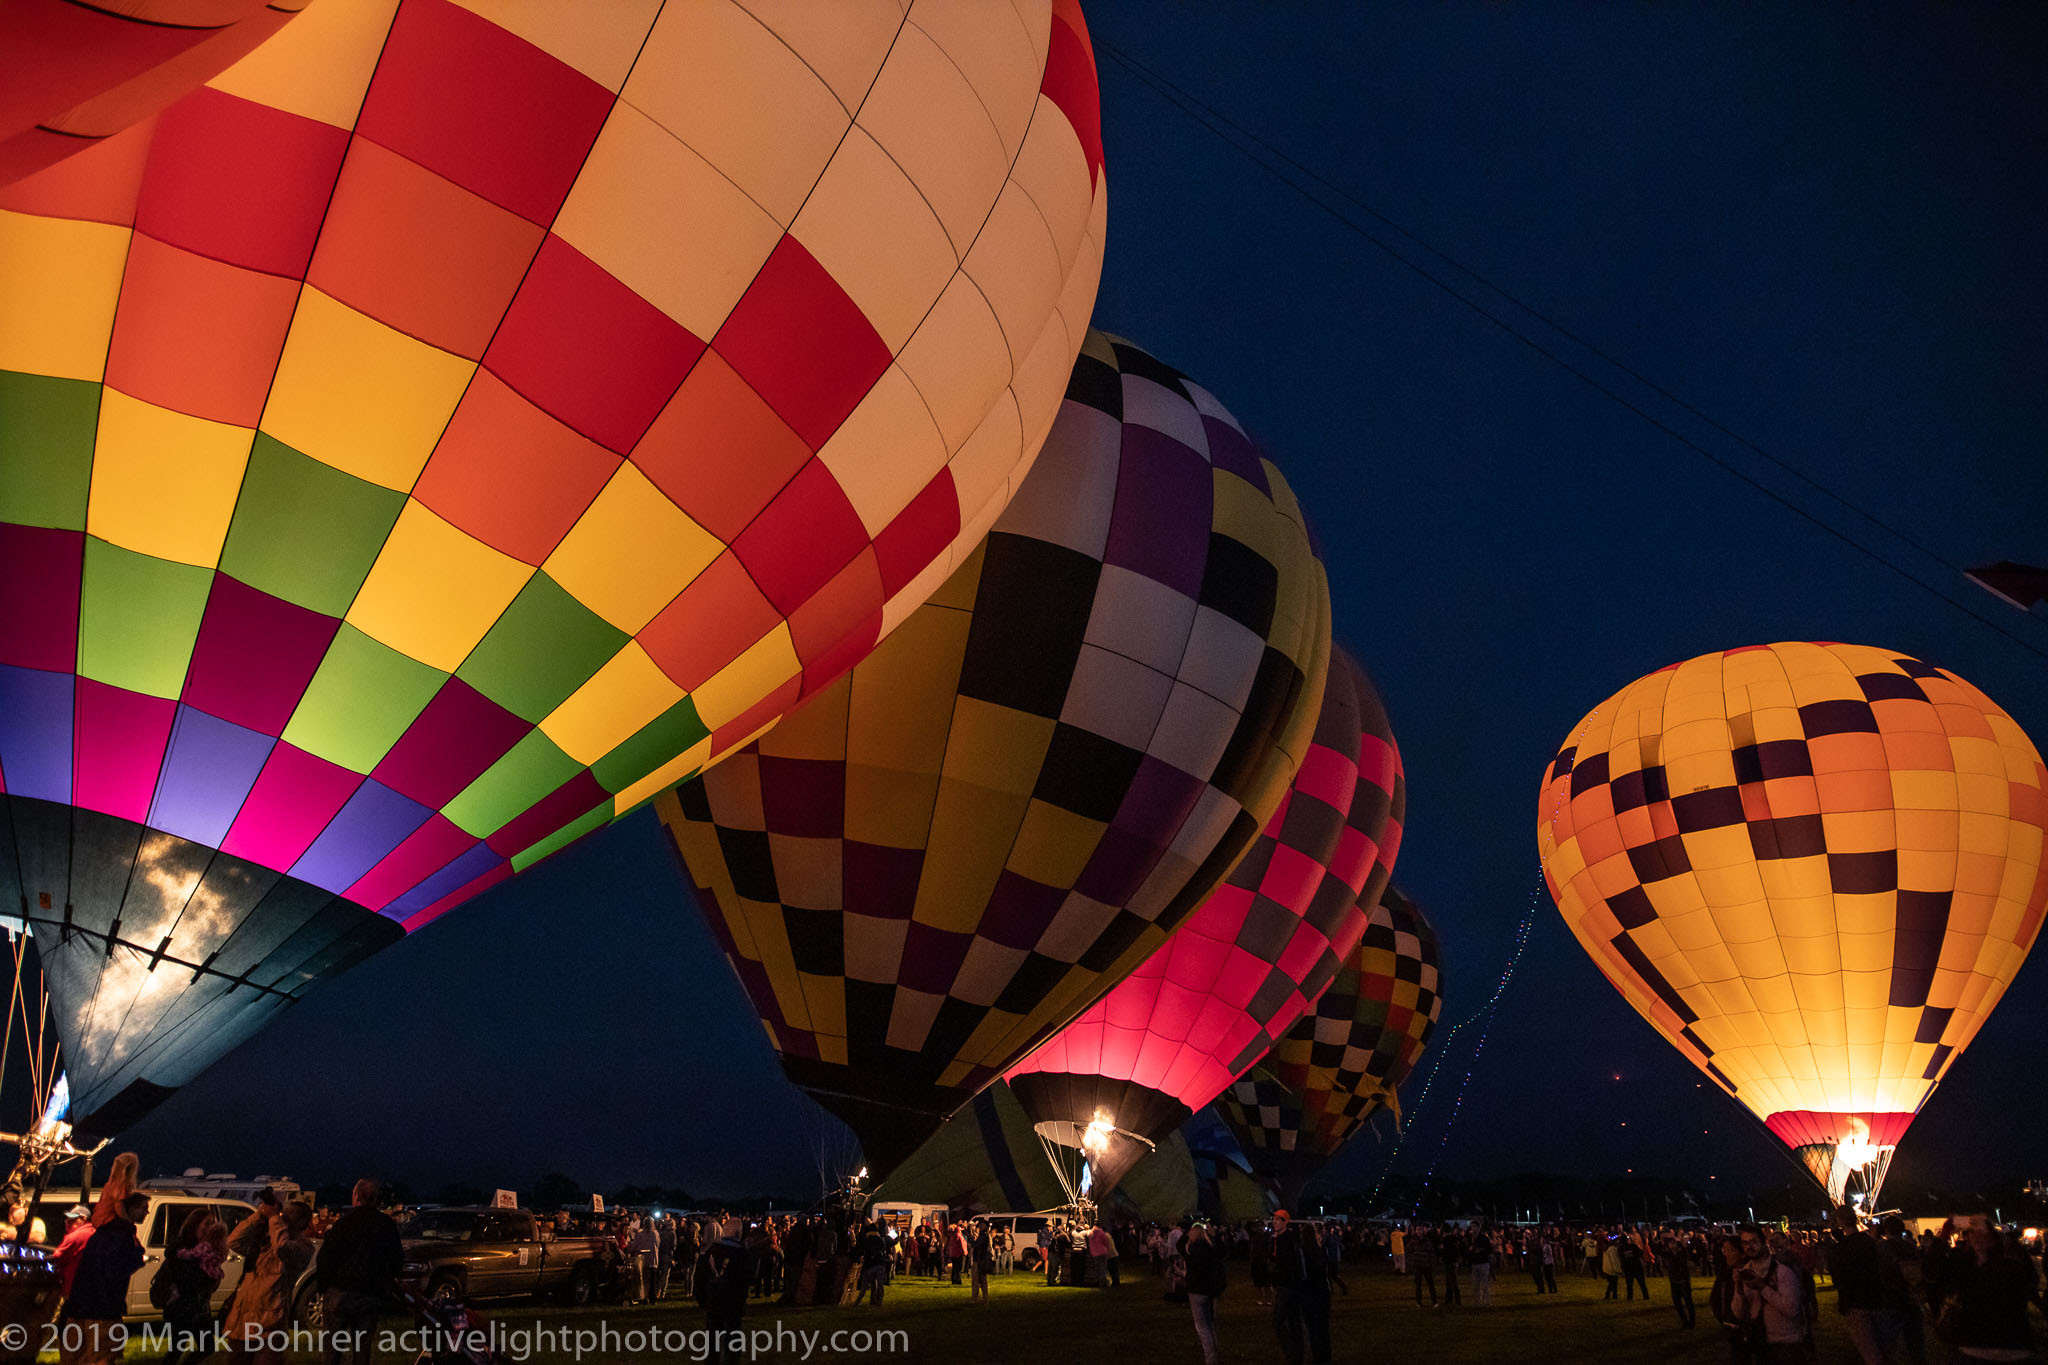 Flanmes On! - Albuquerque International Balloon Fiesta, Active Light Photography